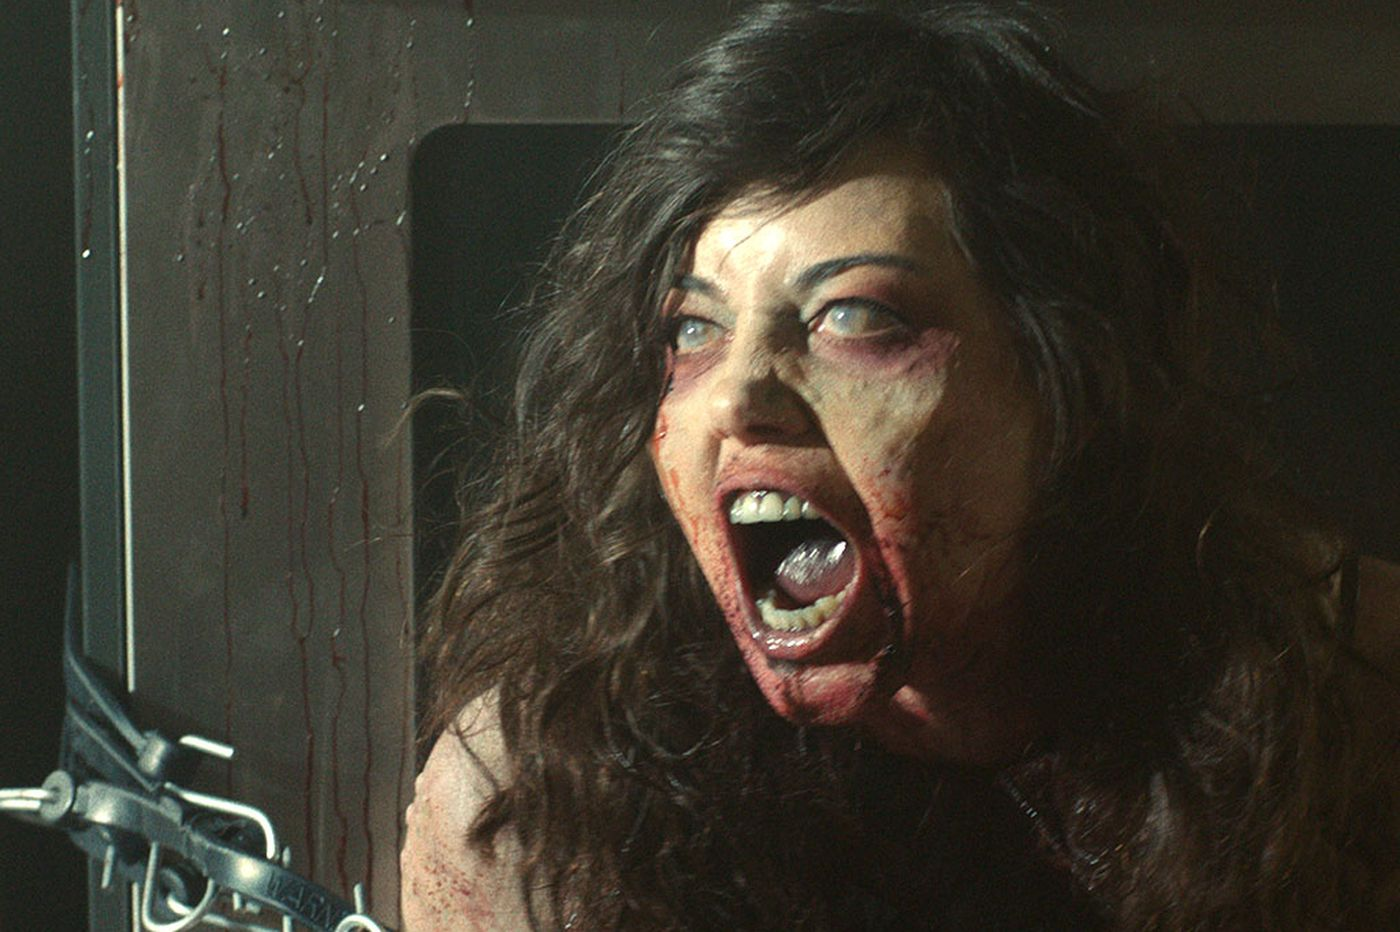 'Life After Beth': Teen zombie rom-com feels a bit dated